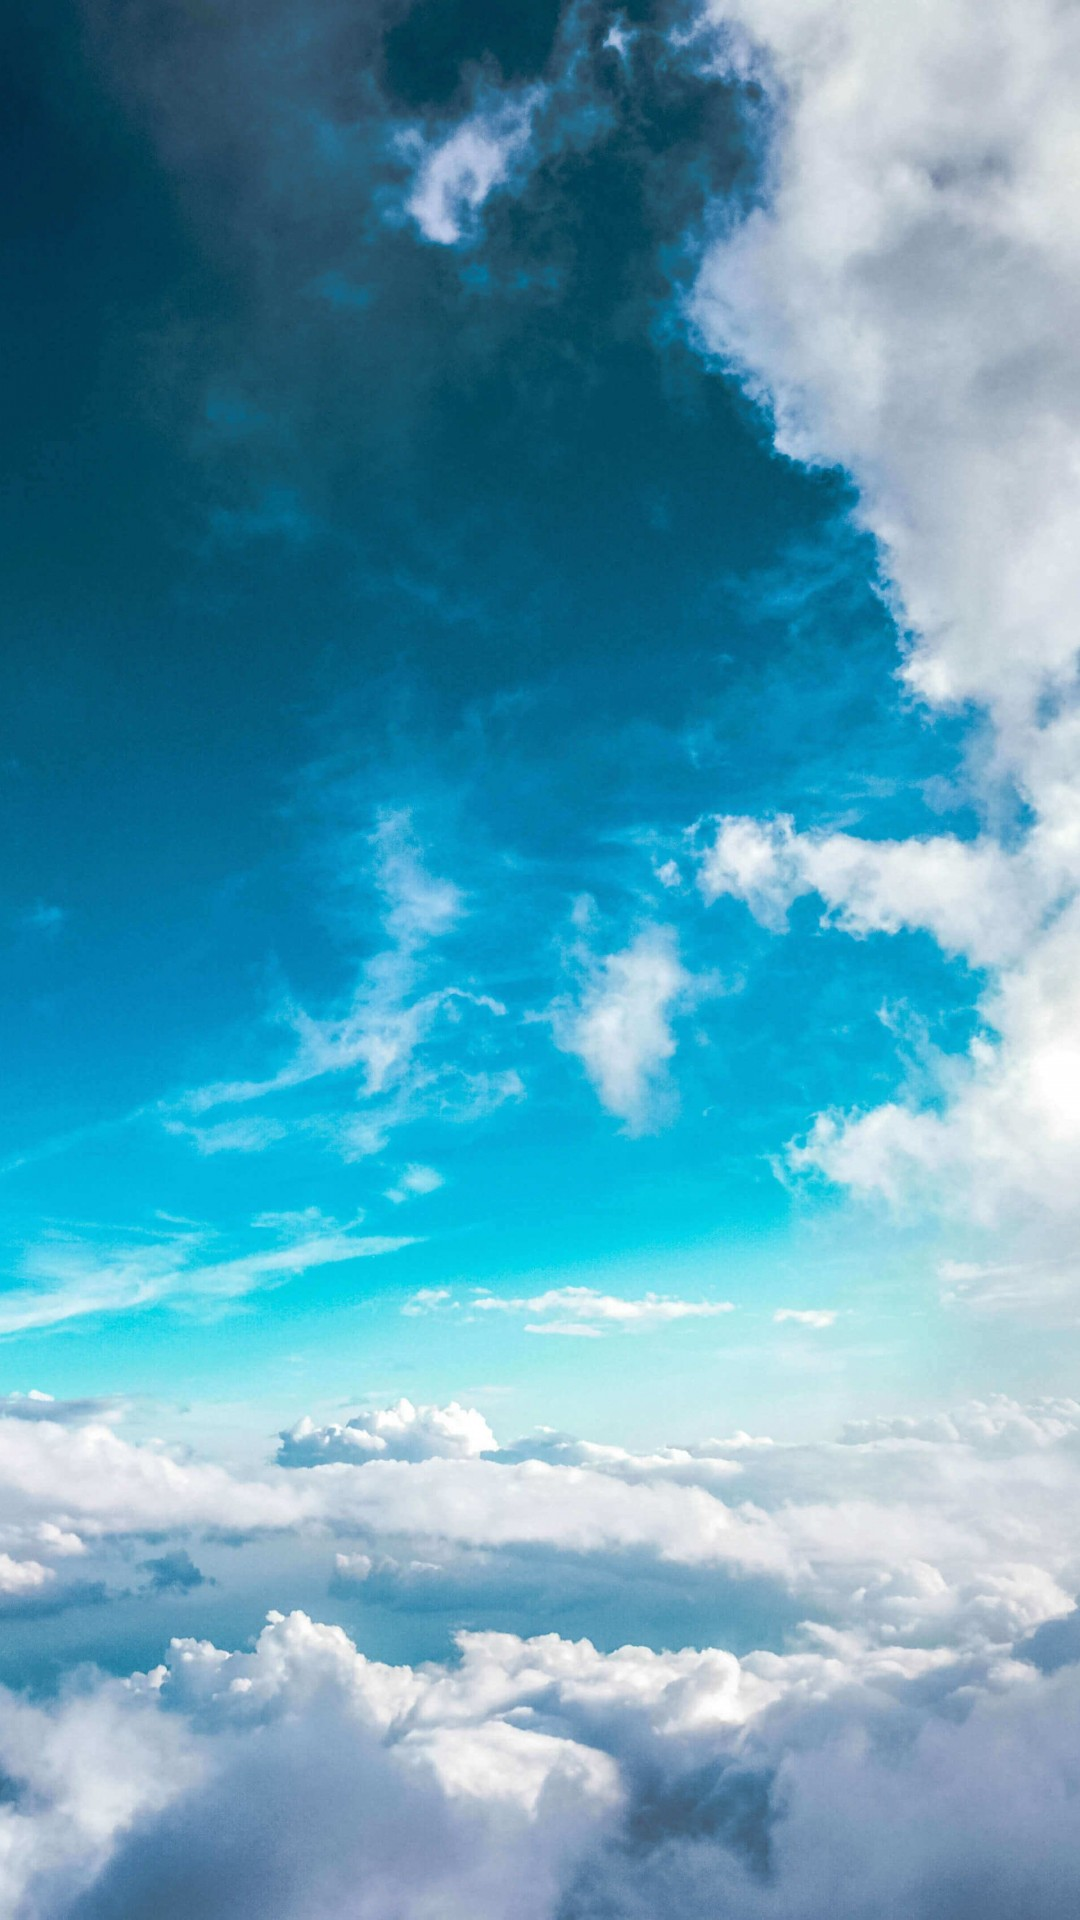 Cloudy Blue Sky Wallpaper for SONY Xperia Z2